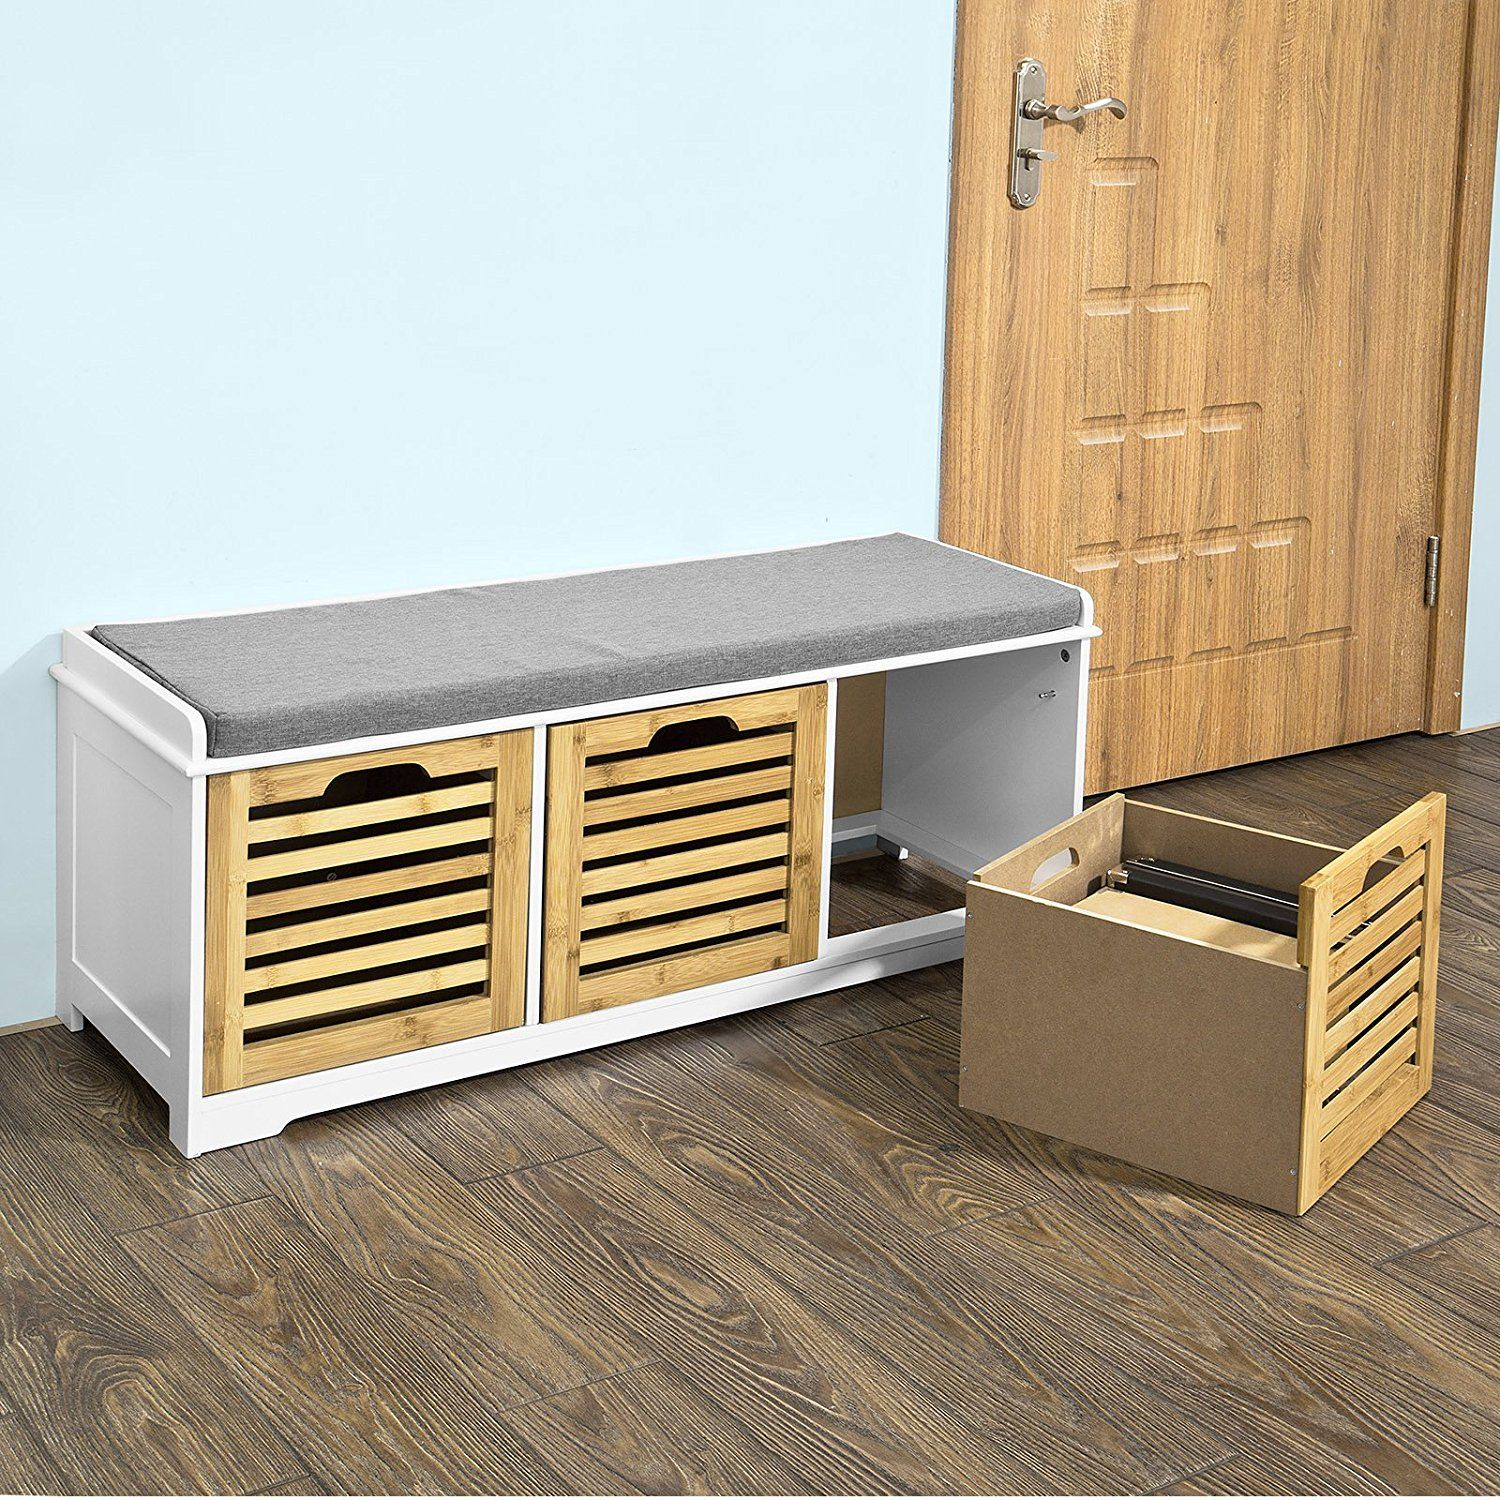 Amazon Com Haotian Storage Bench With 3 Drawers Seat Cushion Shoe Cabinet Storage Unit Bench Fsr23 Wn Ki Storage Bench Entryway Shoe Storage Desk Storage